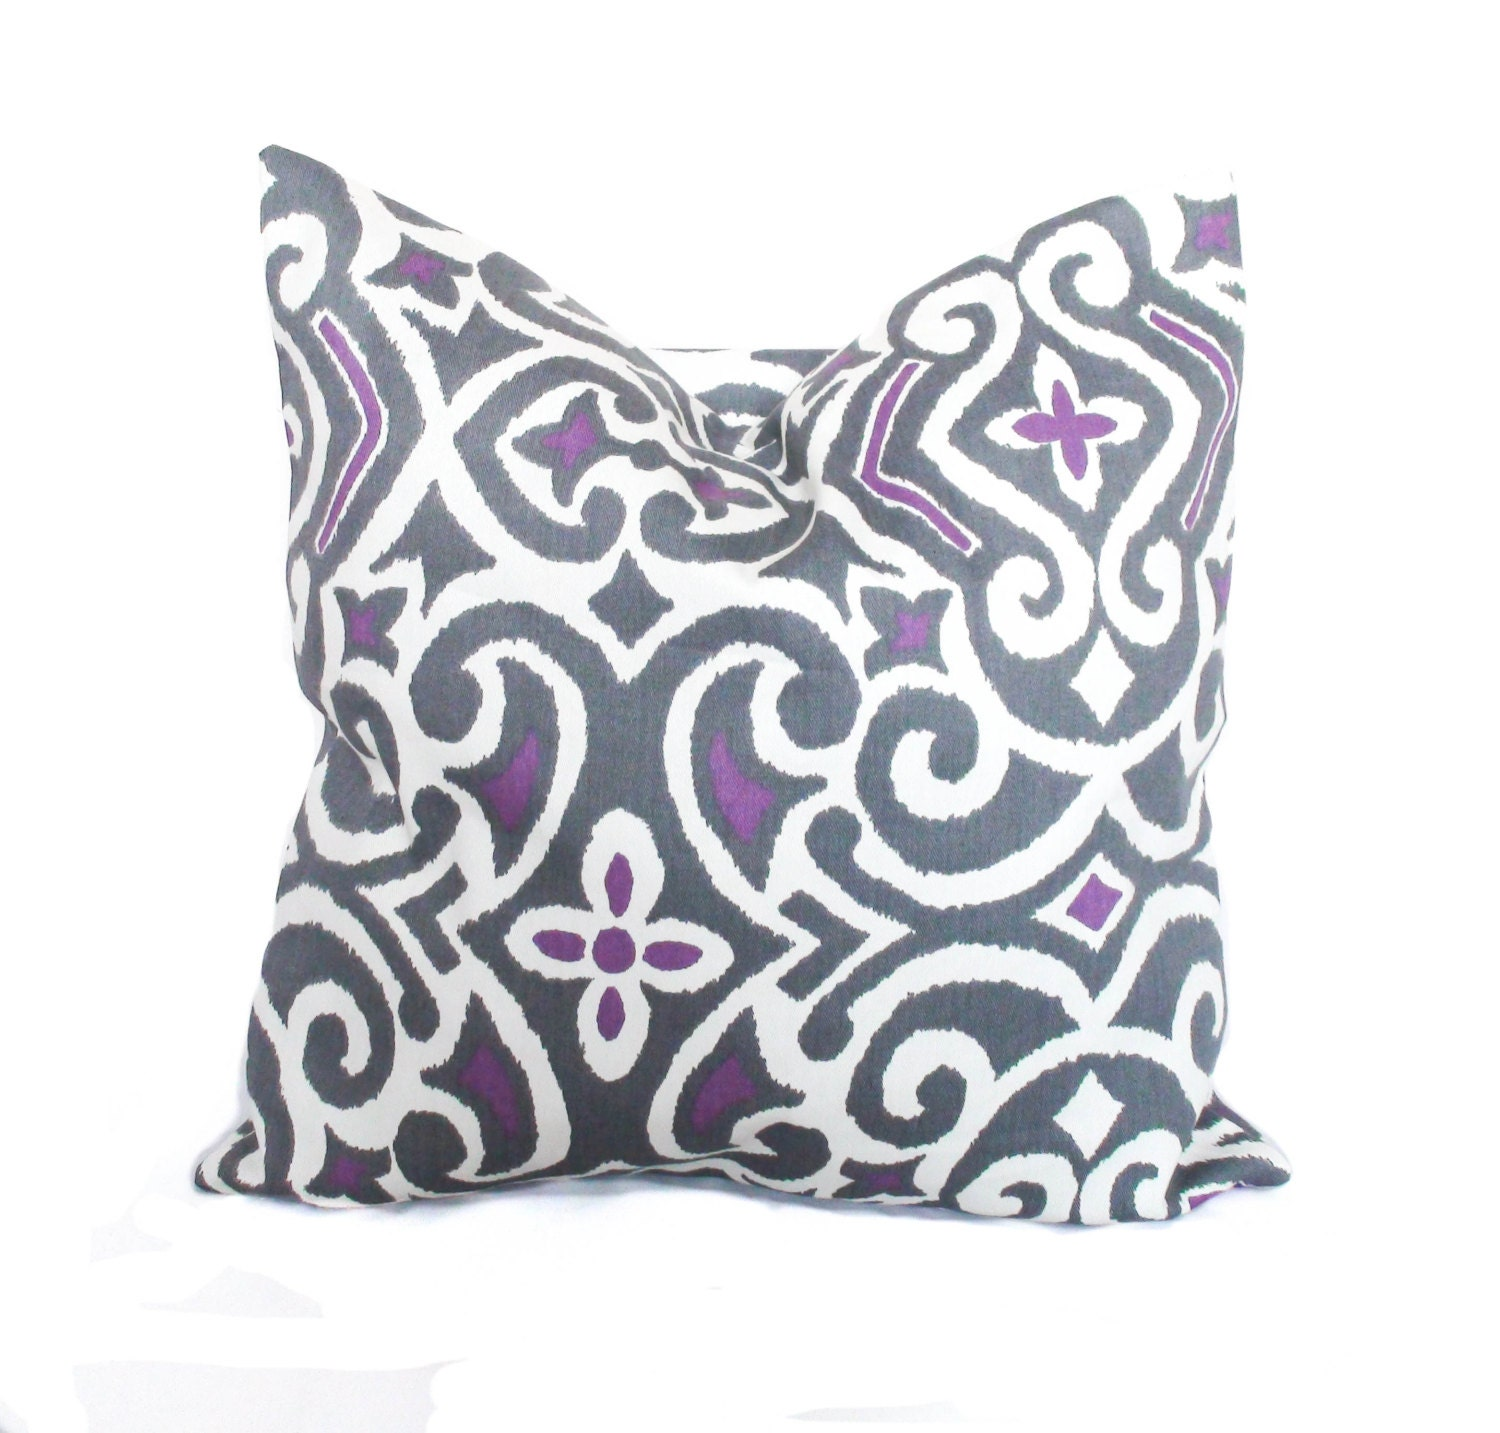 Purple And Gray Decorative Pillows : Unavailable Listing on Etsy